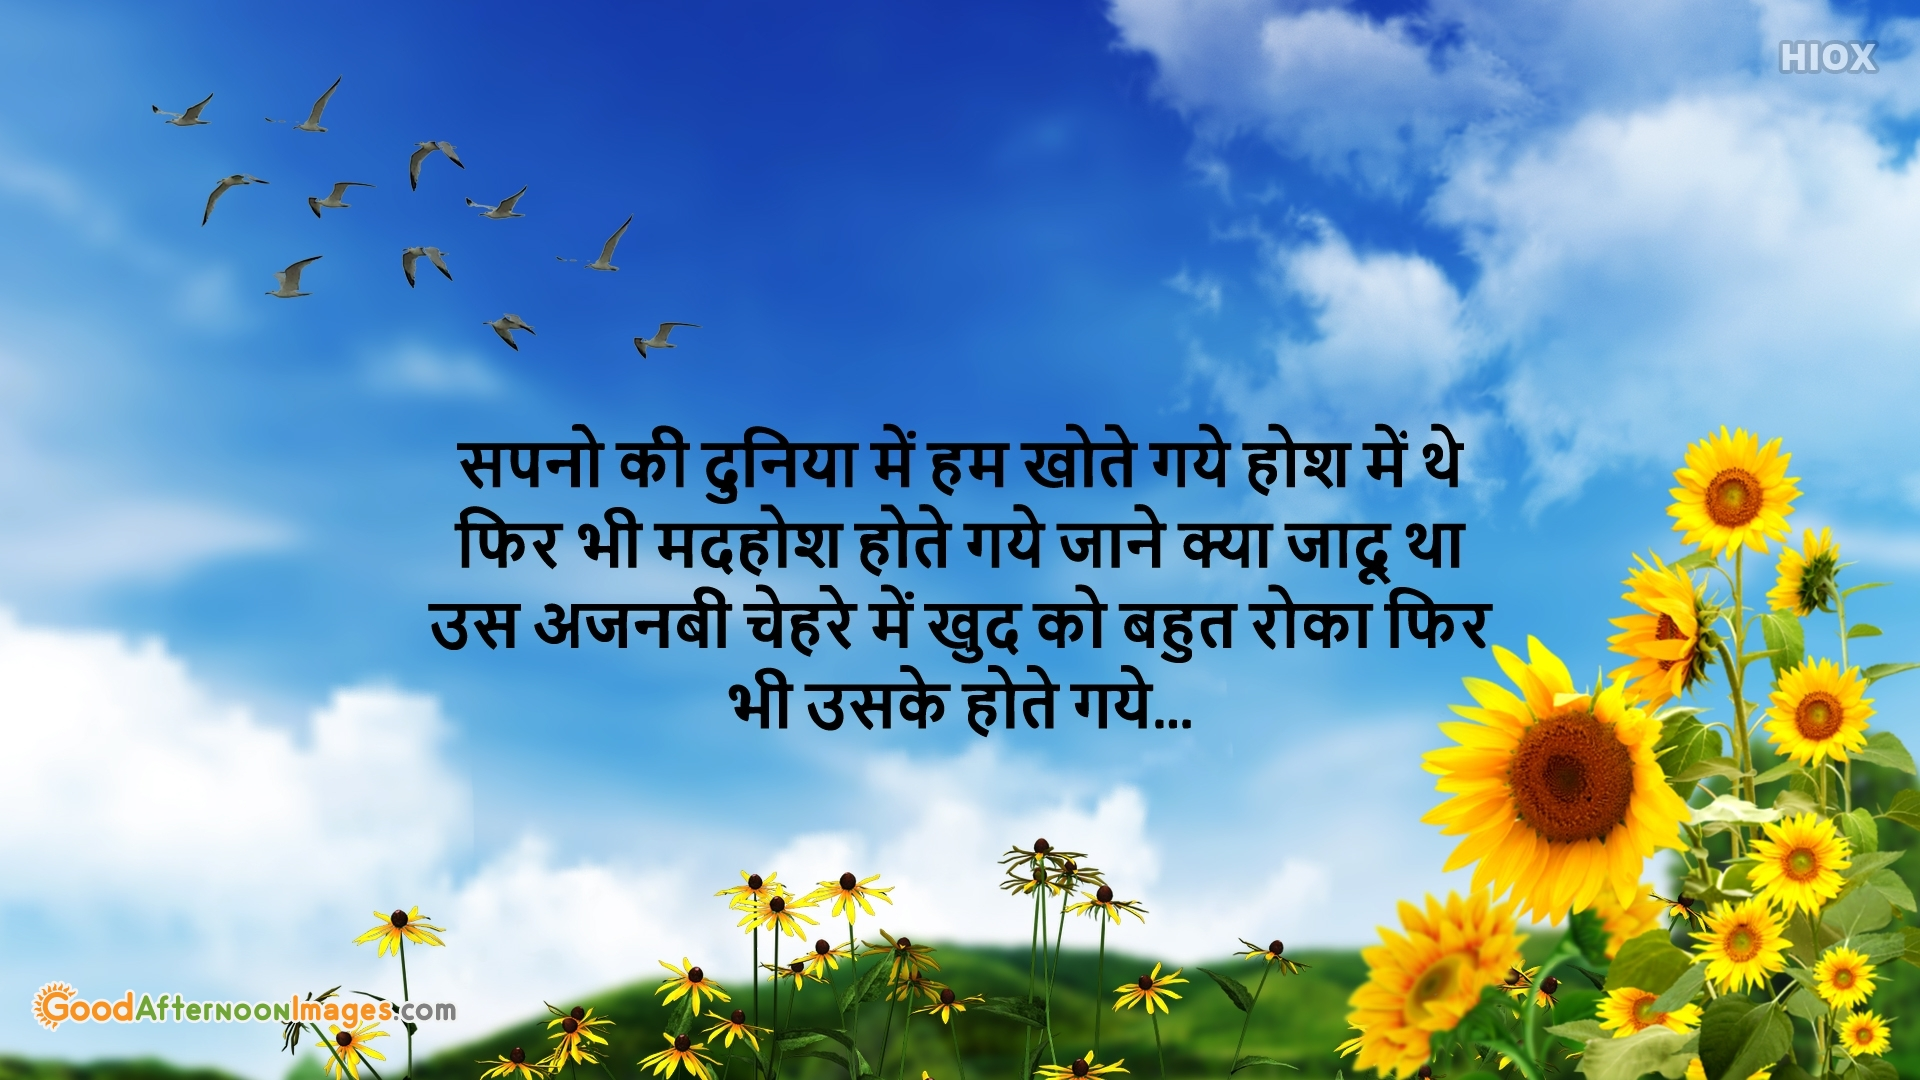 Good Afternoon Wishes Image In Hindi Download